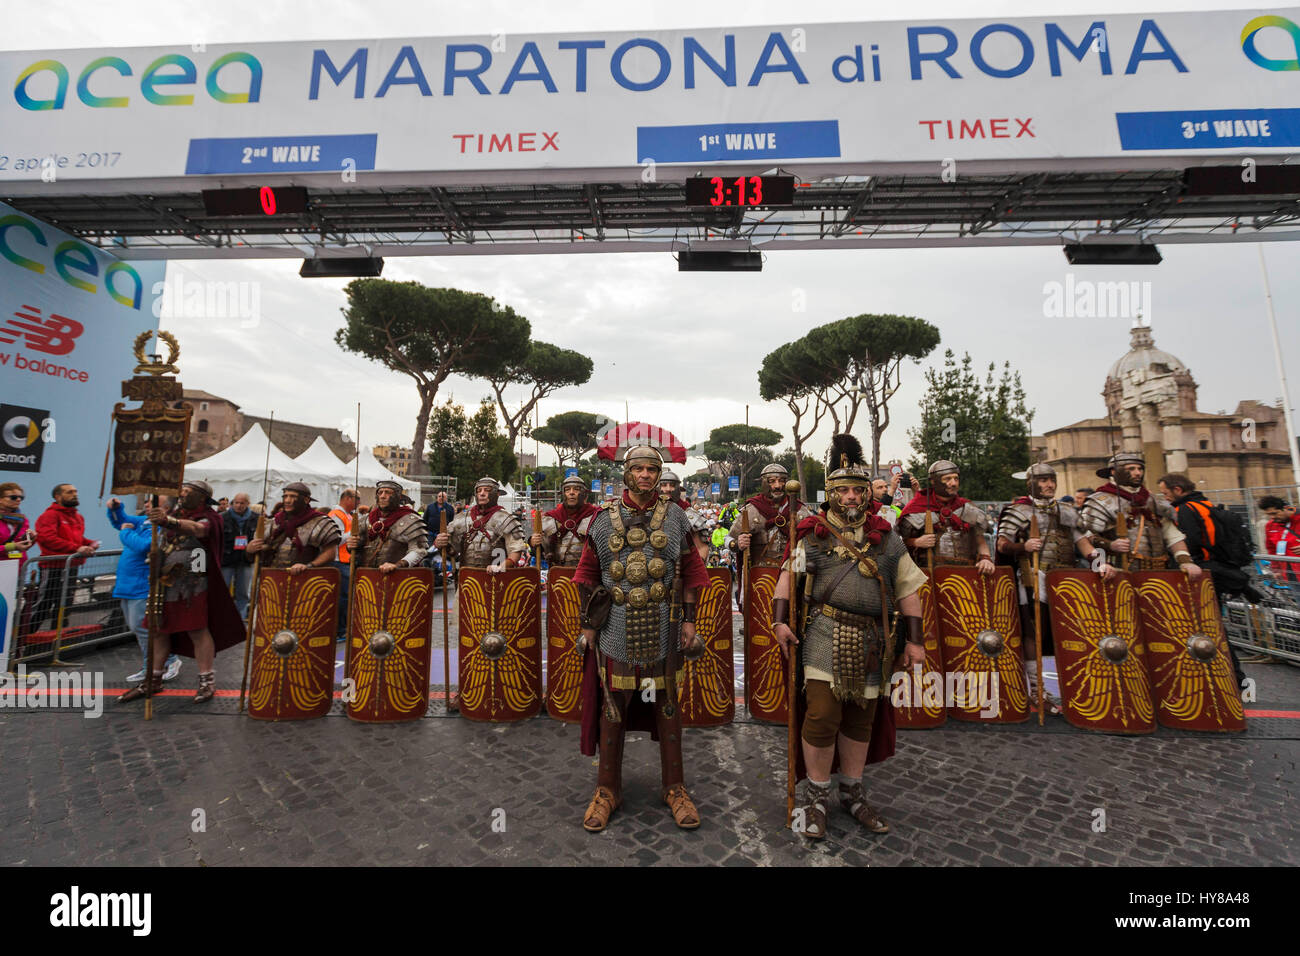 Rome, Italy. 02nd Apr, 2017. Runners compete during the 23rd edition of the Maratona di Roma (Rome Marathon), an - Stock Image